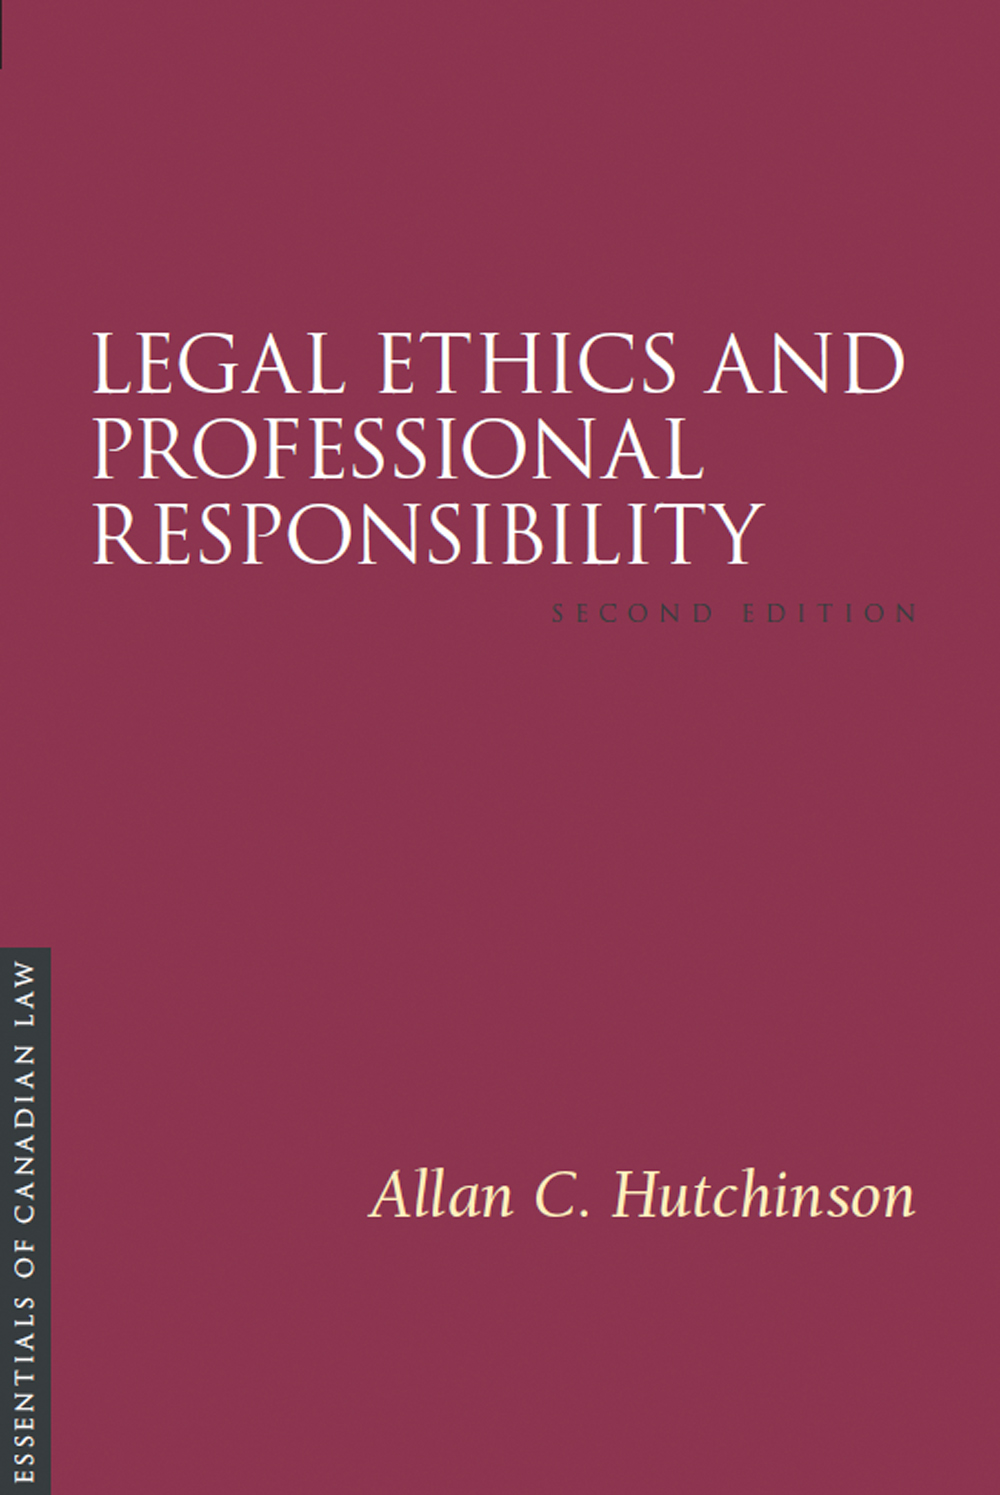 Book cover for Legal Ethics and Professional Responsibility by Allan C. Hutchinson. As a book in the Essentials of Canadian Law series, the cover is a solid burgundy colour with a simple type treatment in capital serif letters in white.